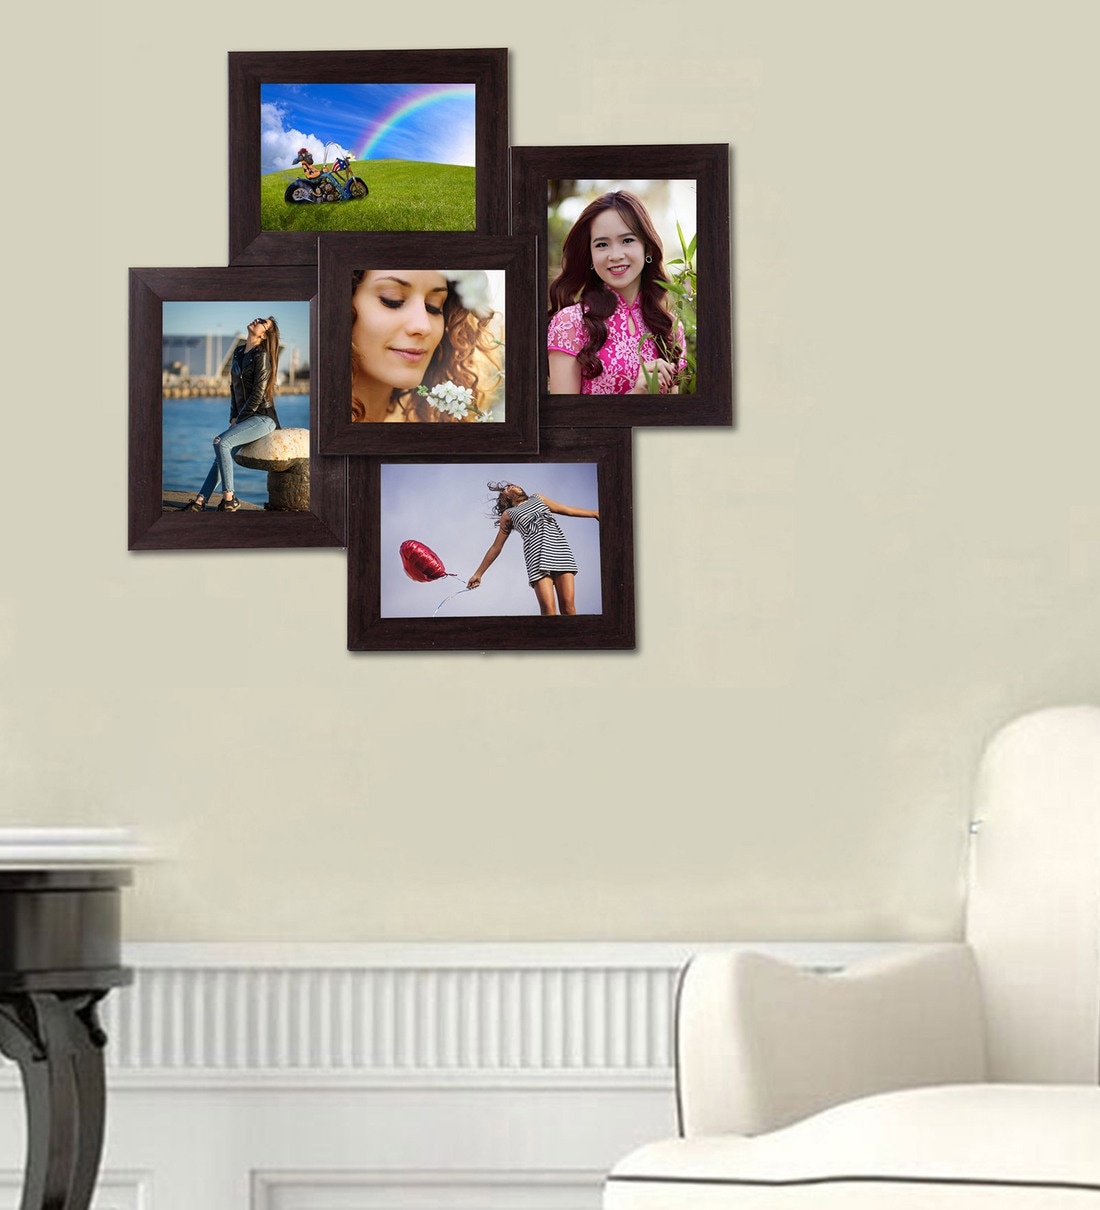 Buy Brown Synthetic Wood Wall Mounted Collage Photo Frame By Wens Online Multi Photo Frames Photo Frames Home Decor Pepperfry Product